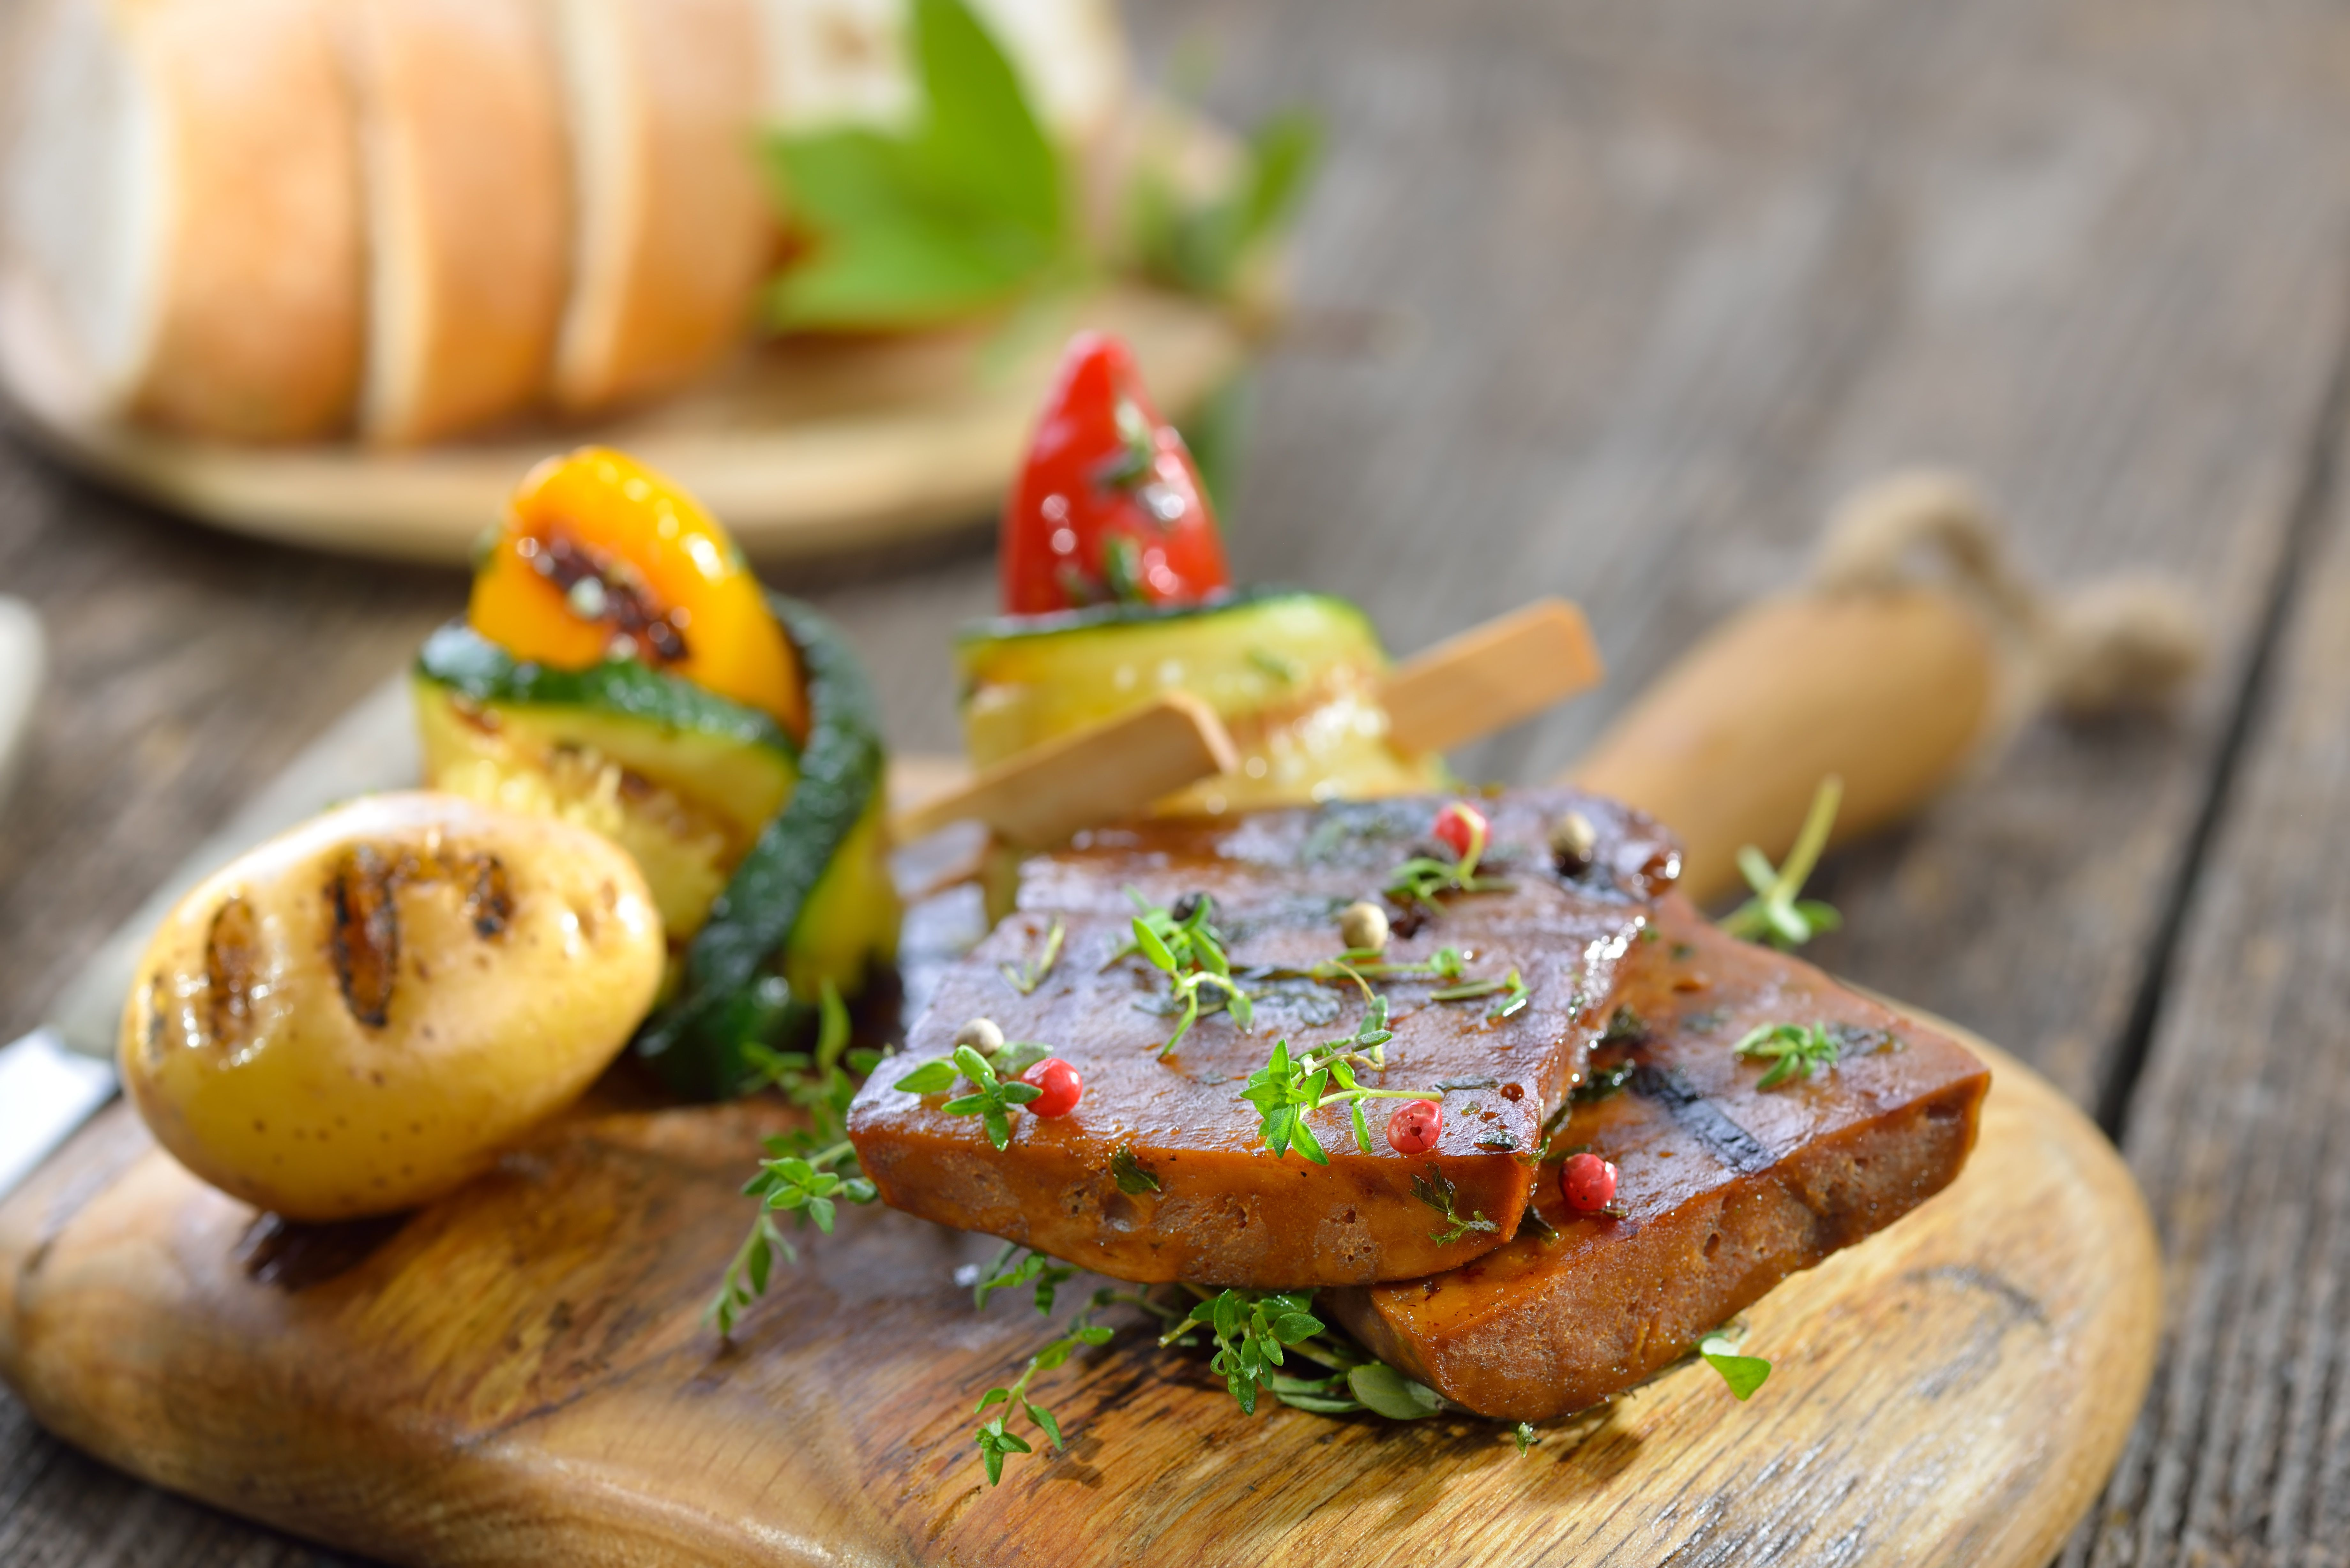 Grilled seitan steaks on a cutting board with vegetables